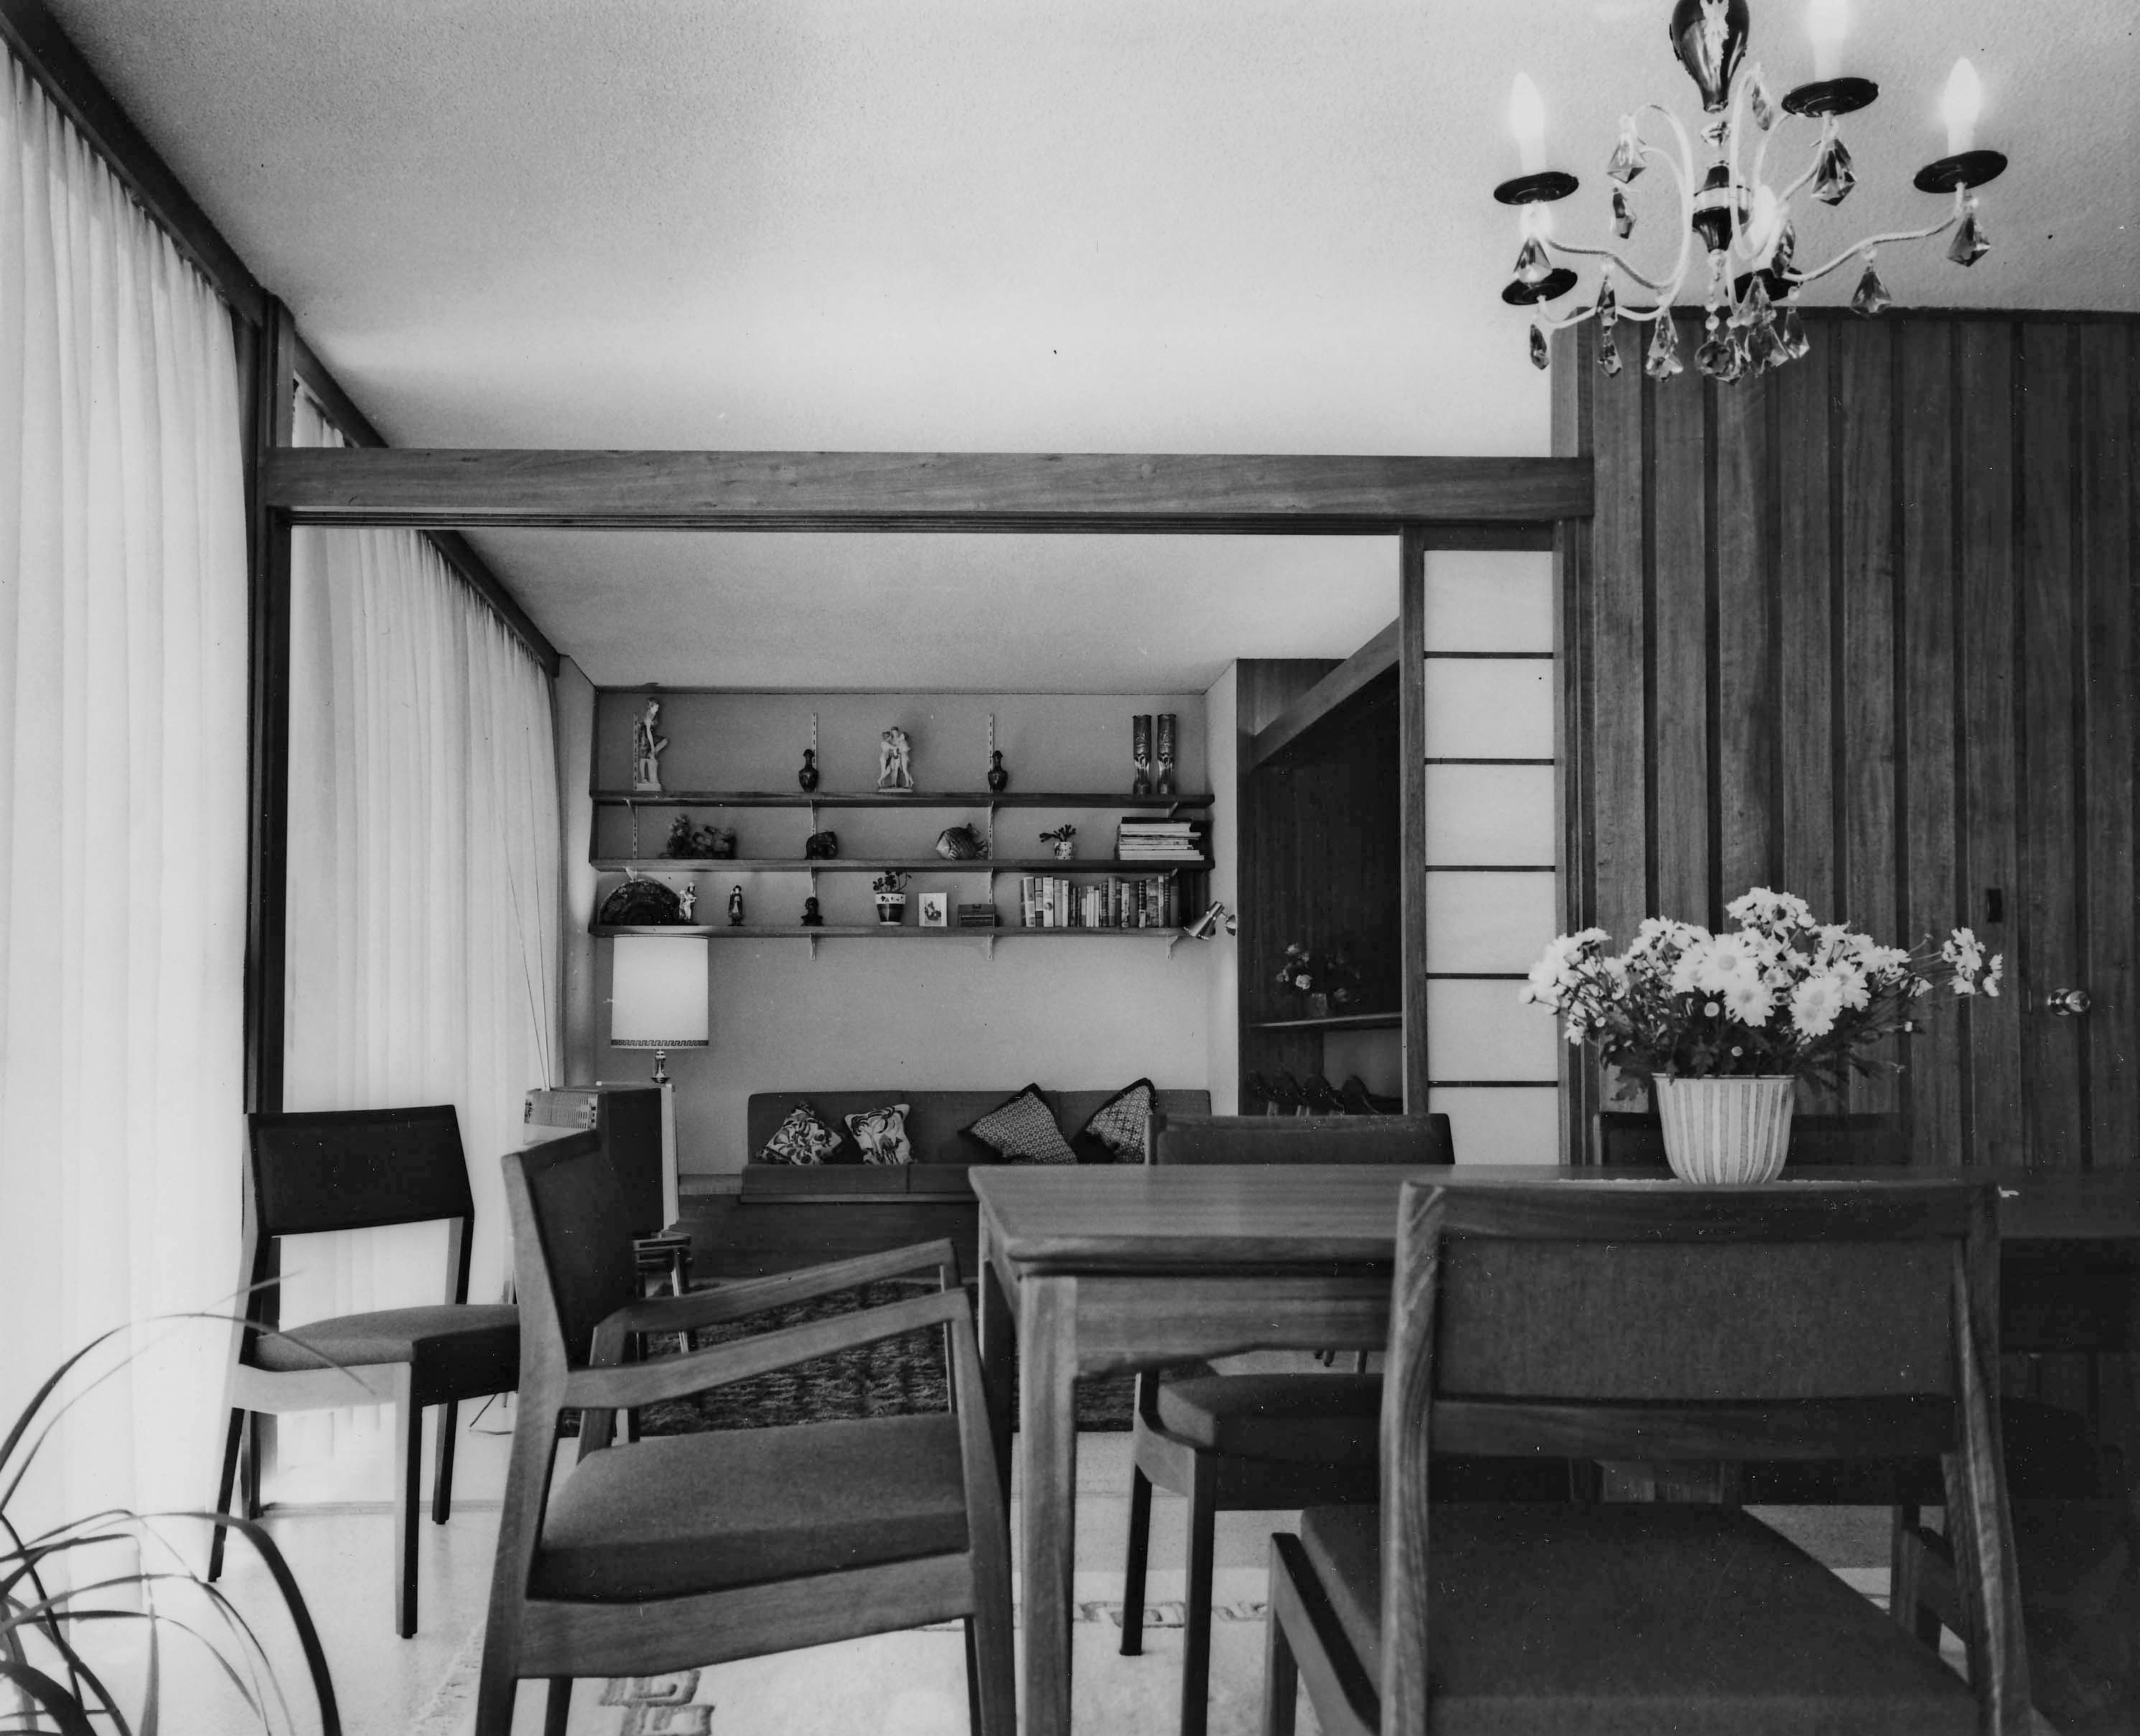 Photo of Assef House interior, Bellevue Hill (1964)